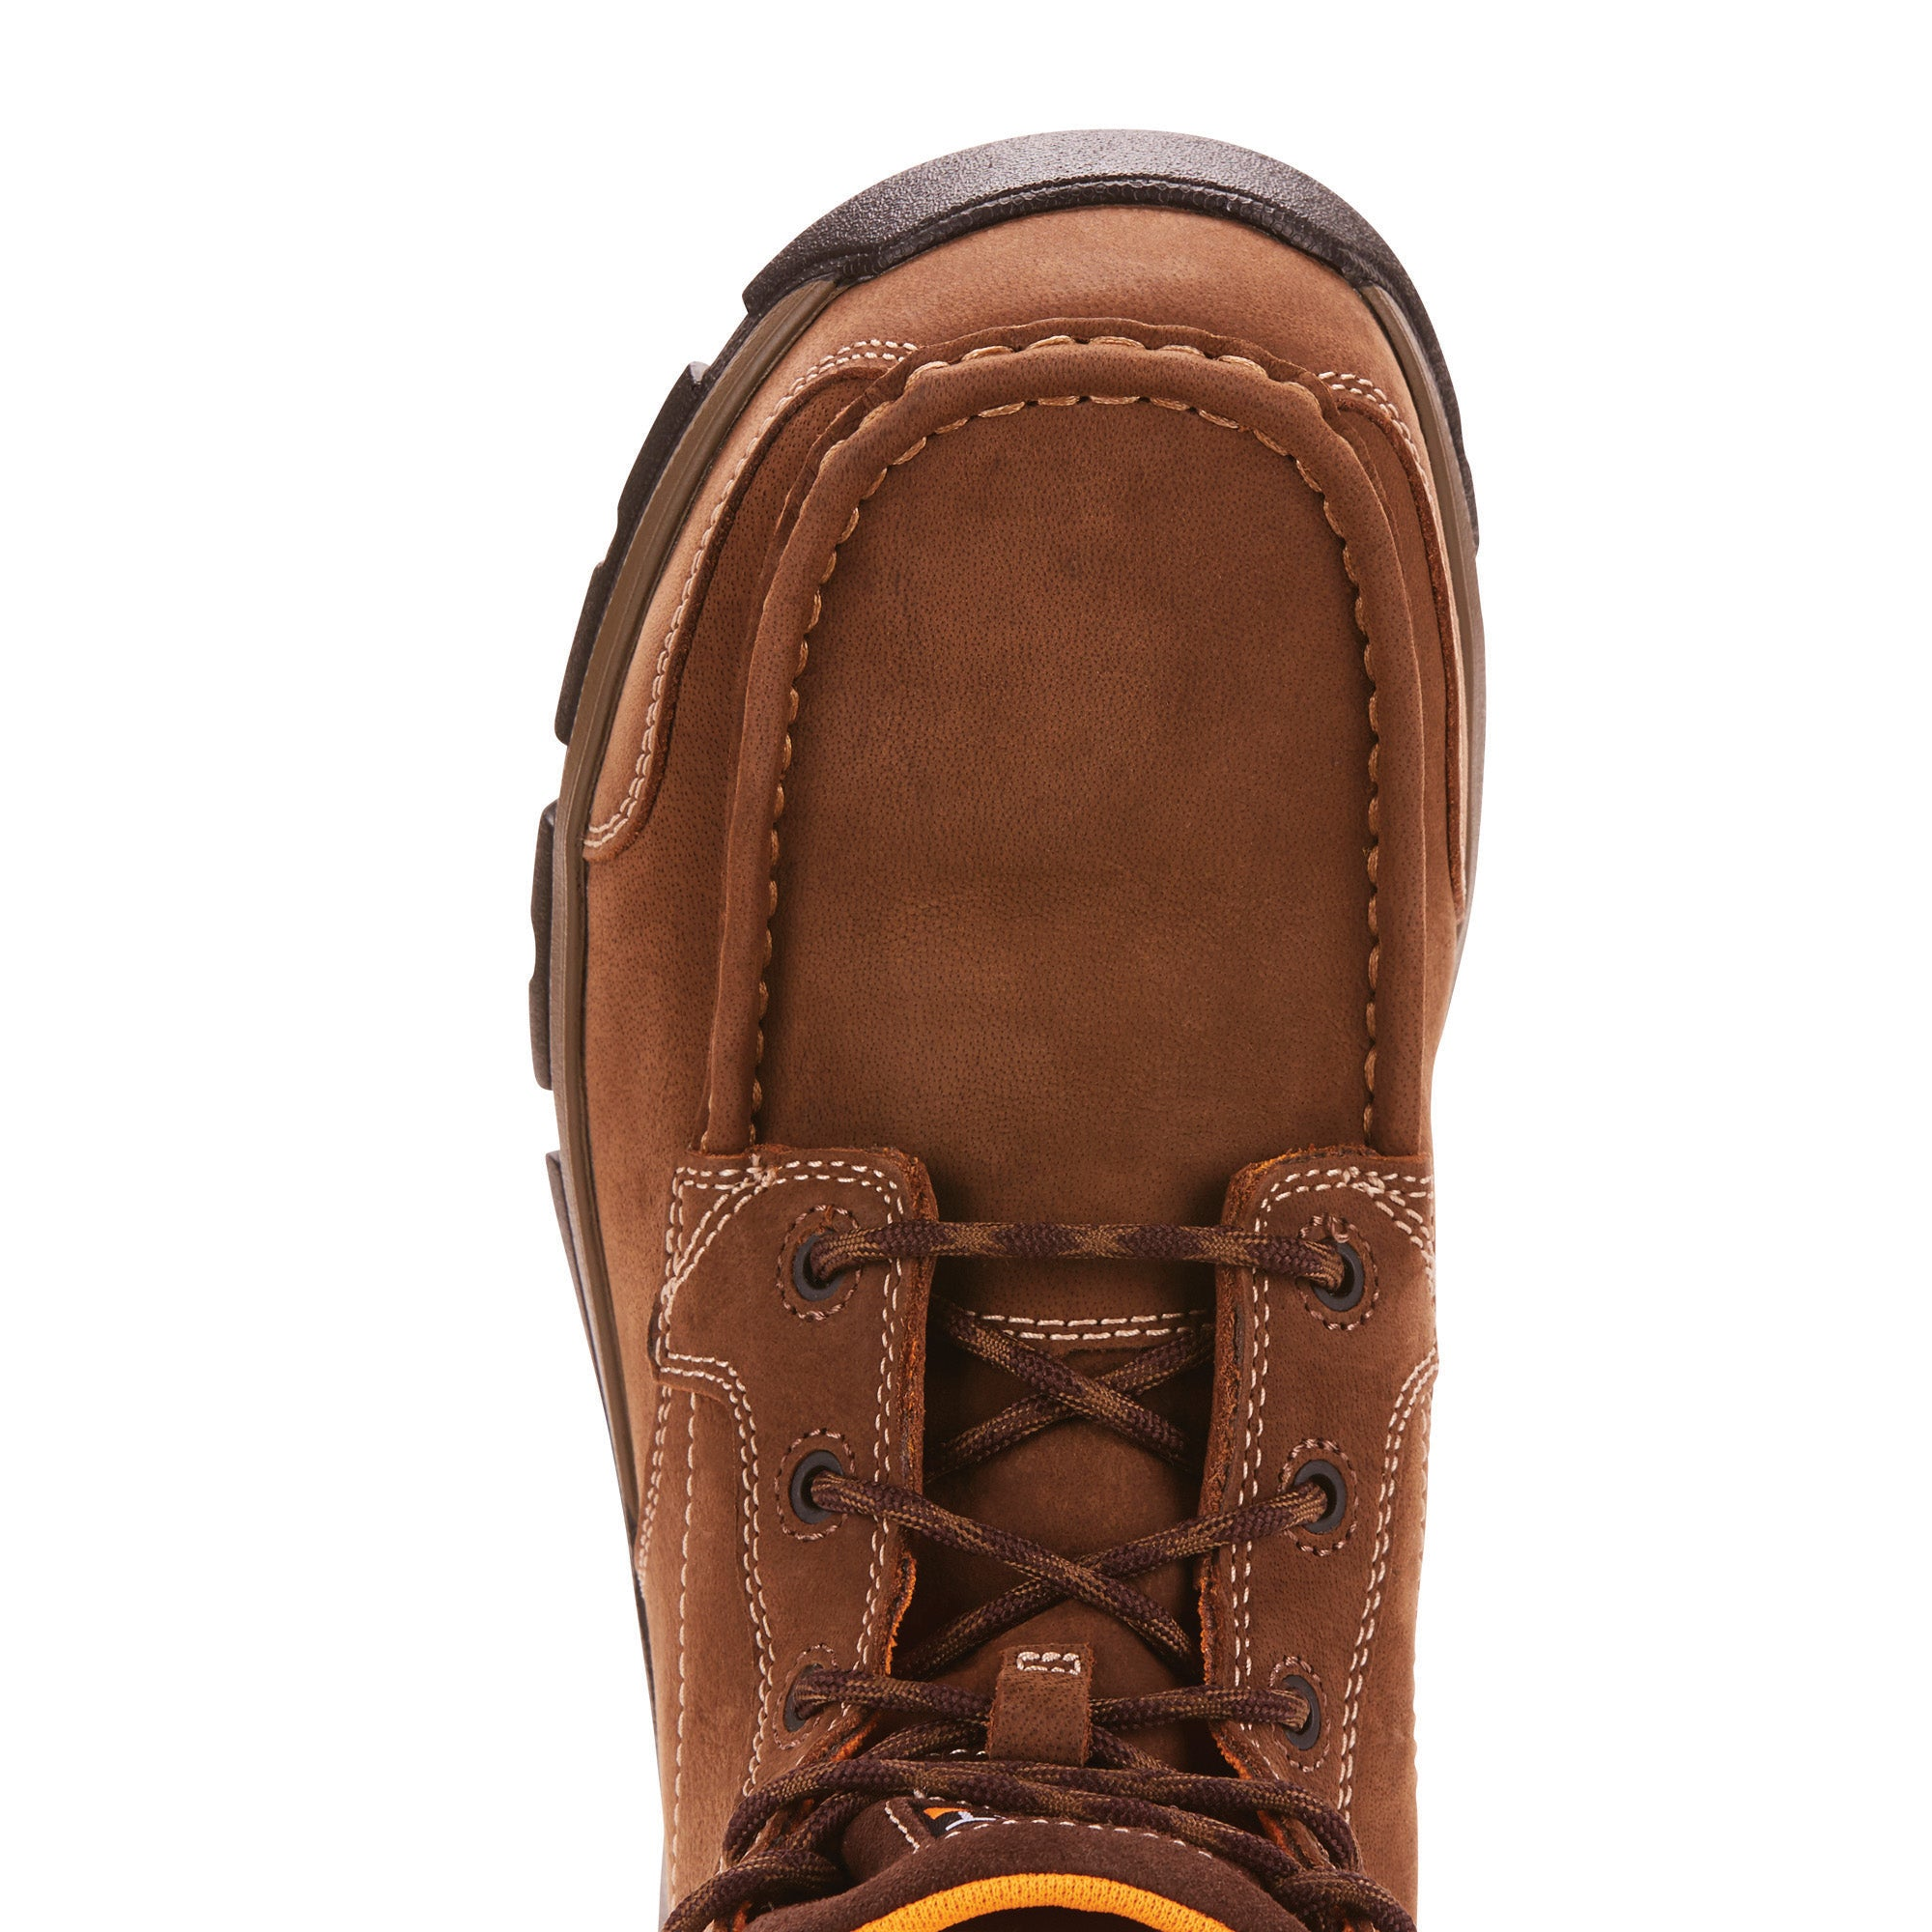 9d2af0abac2 Men's Ariat Edge LTE Chukka Composite Toe Work Boot Brown #10024951 ...